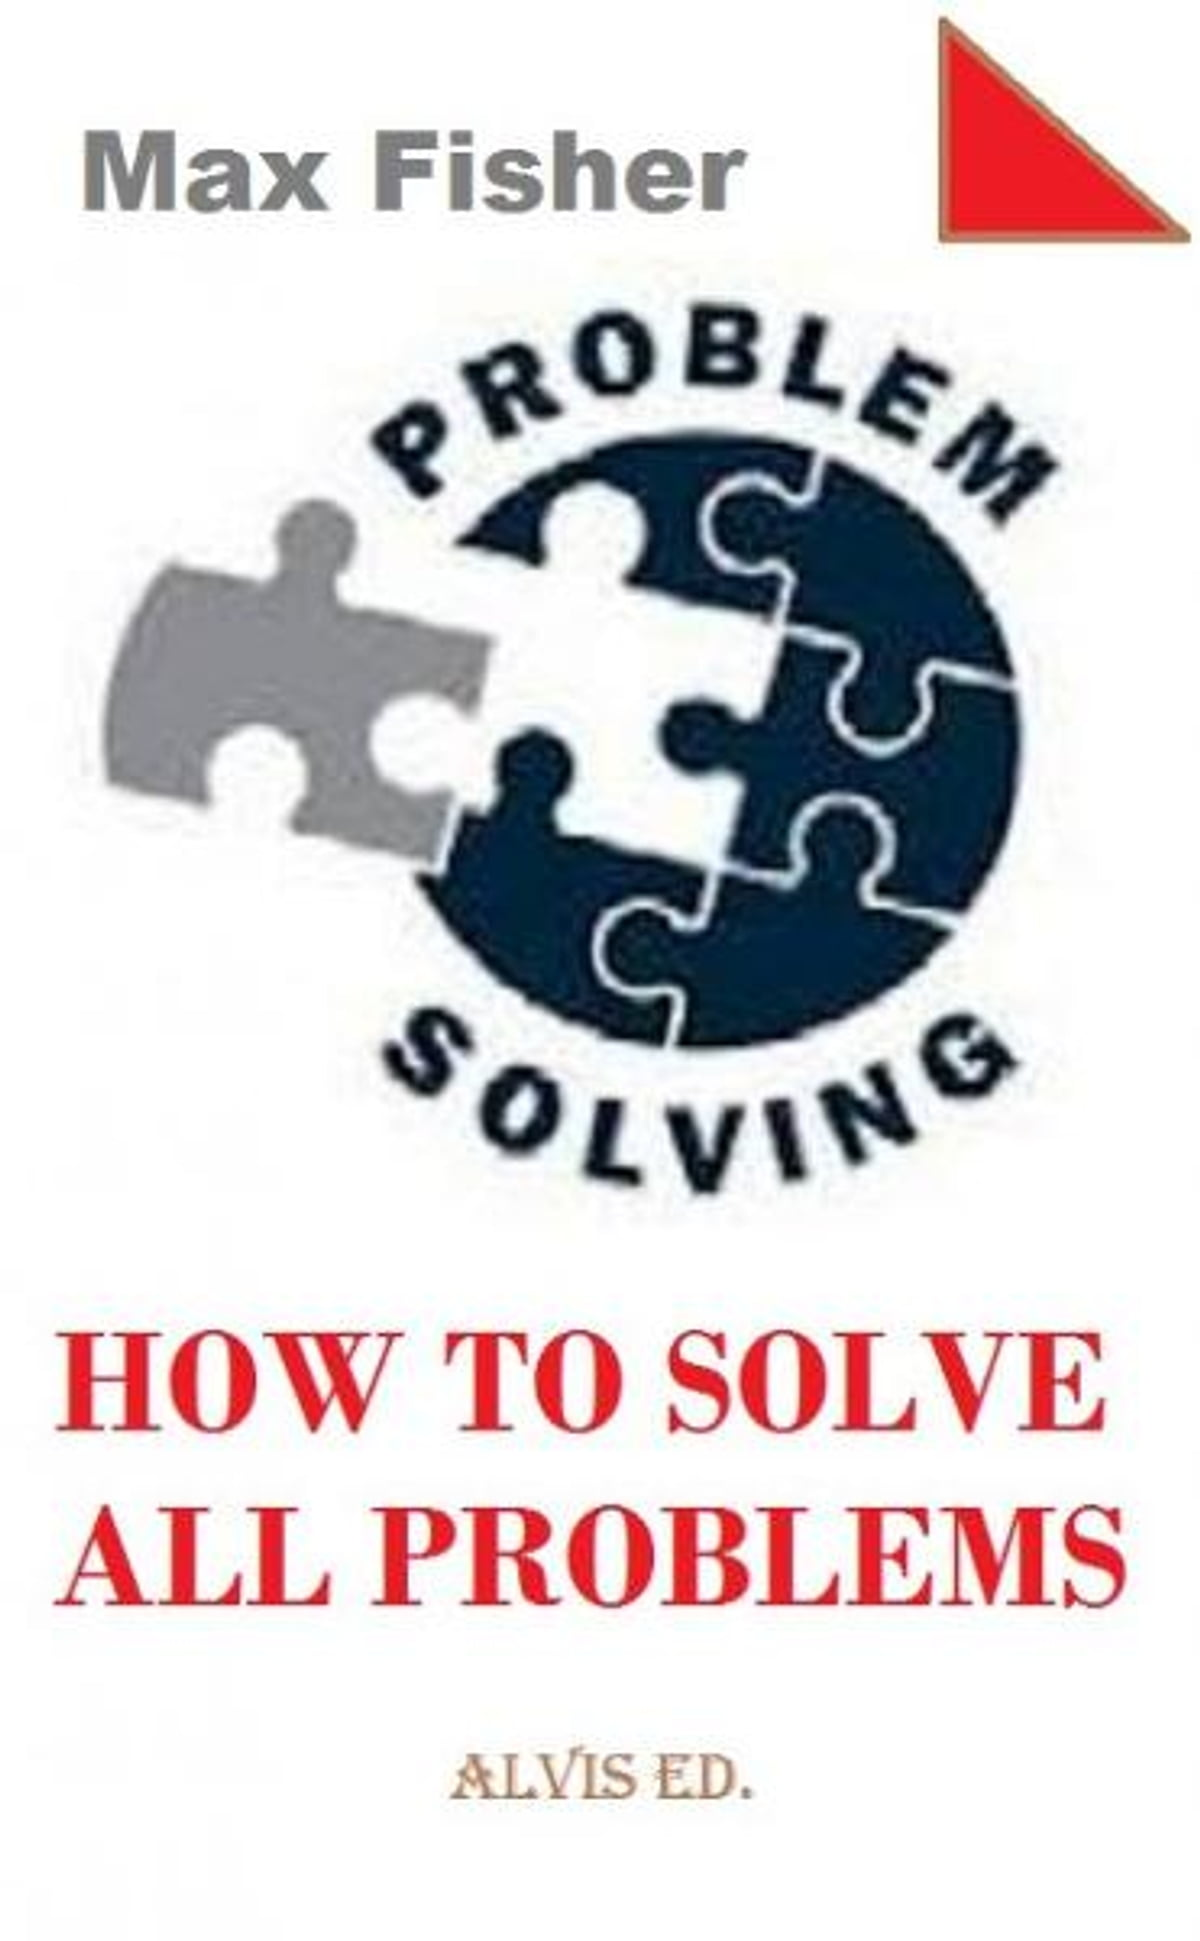 How to solve all problems